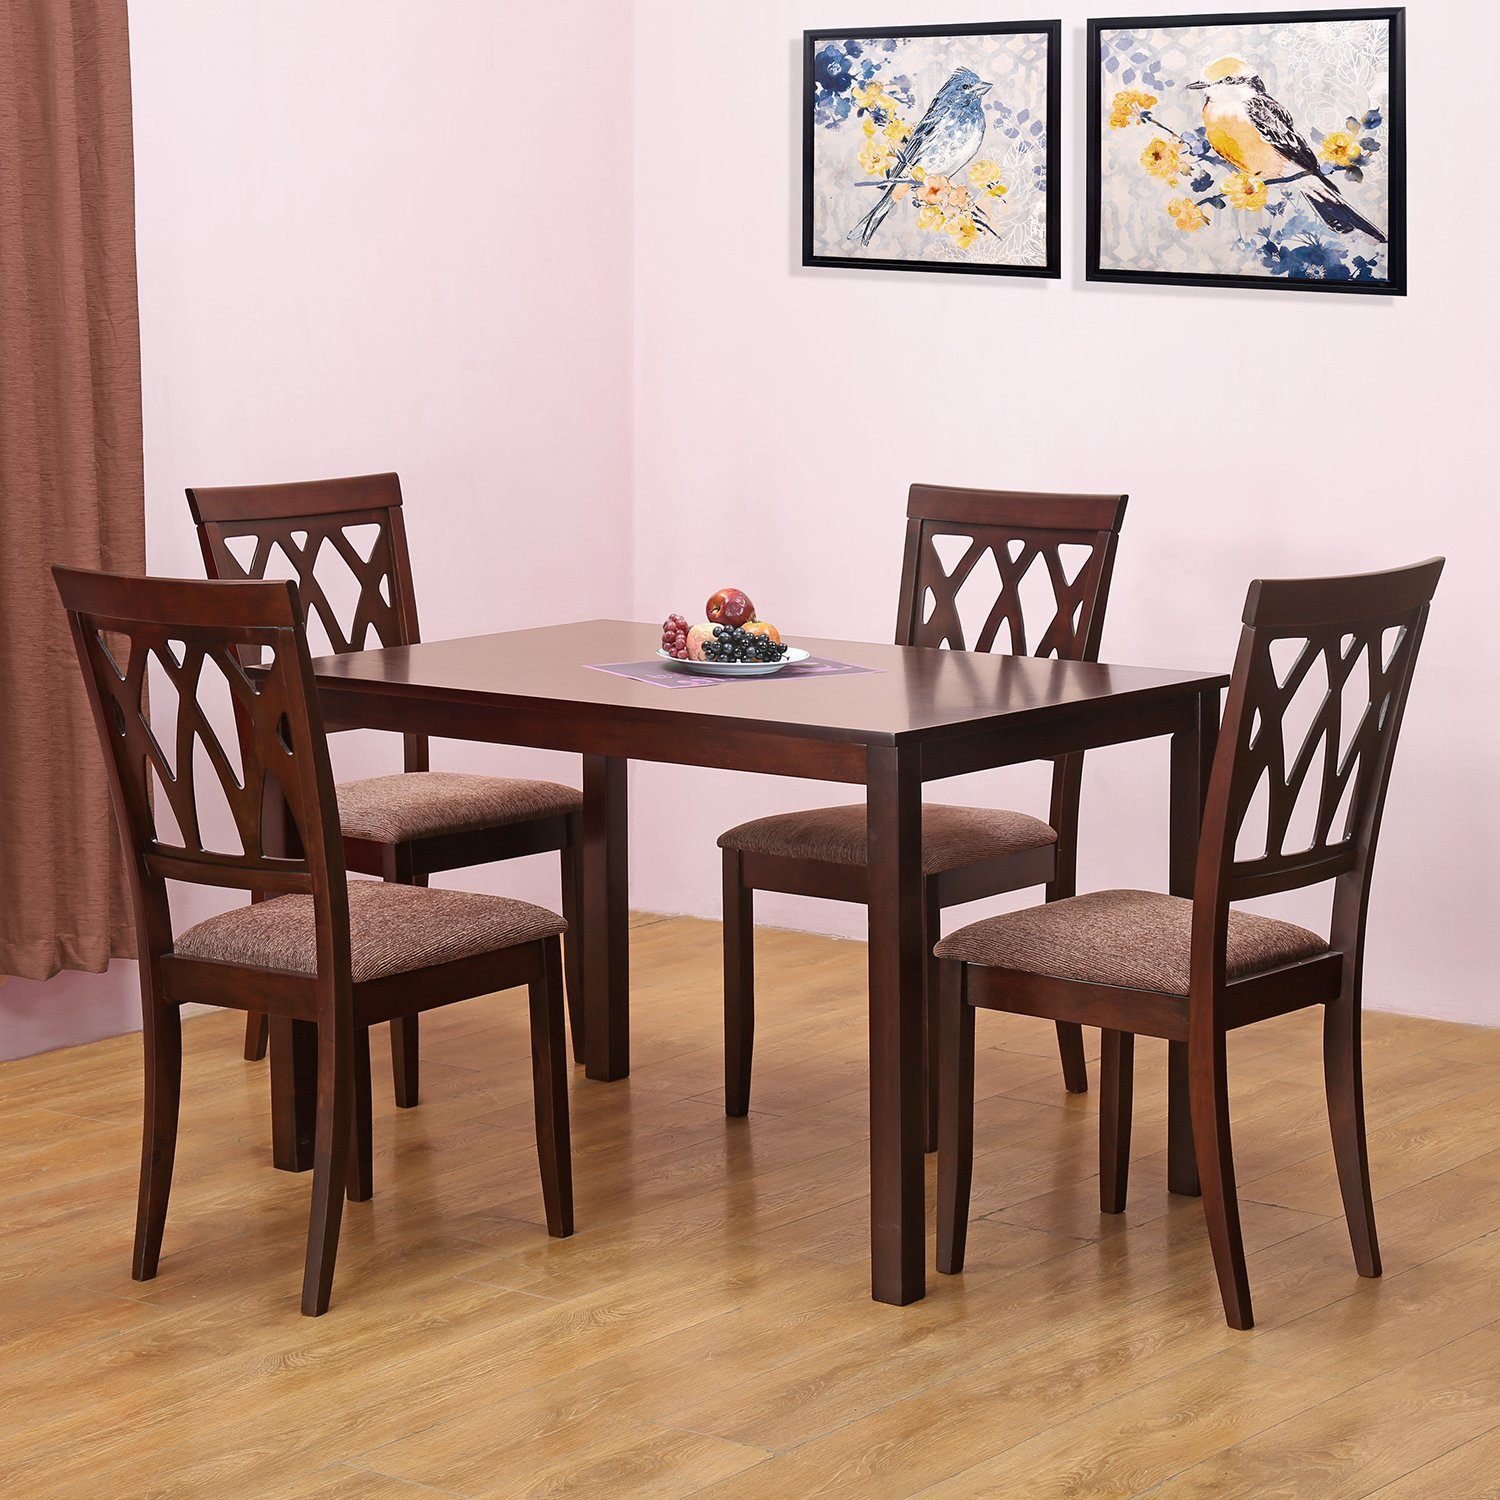 Home By Nilkamal Peak Four Seater Dining Table Set Cappucino Amazonin Kitchen